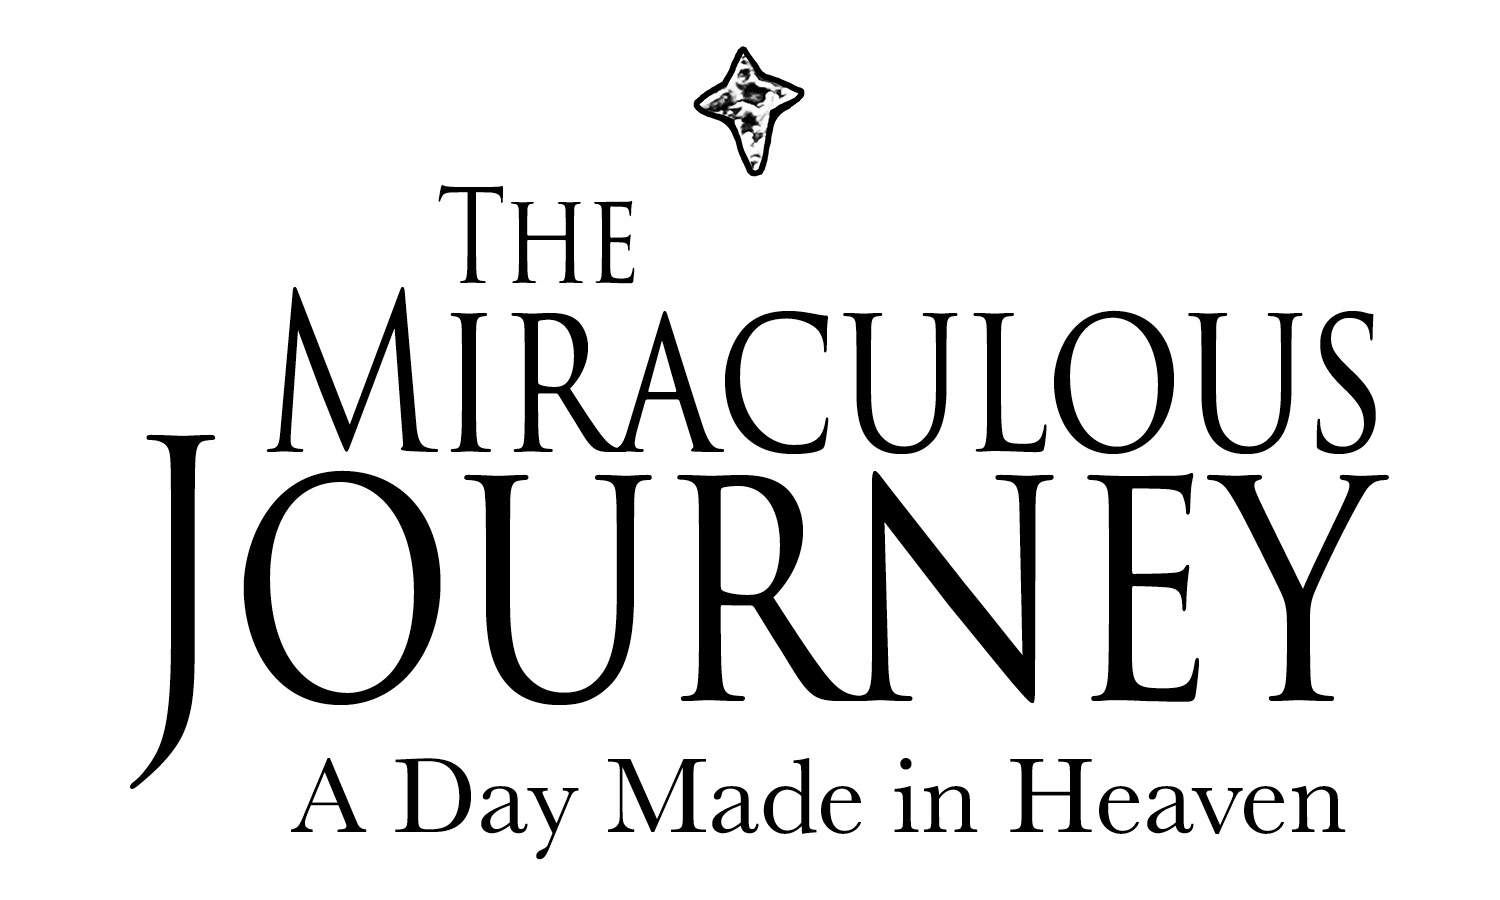 The Miraculous Journey logo